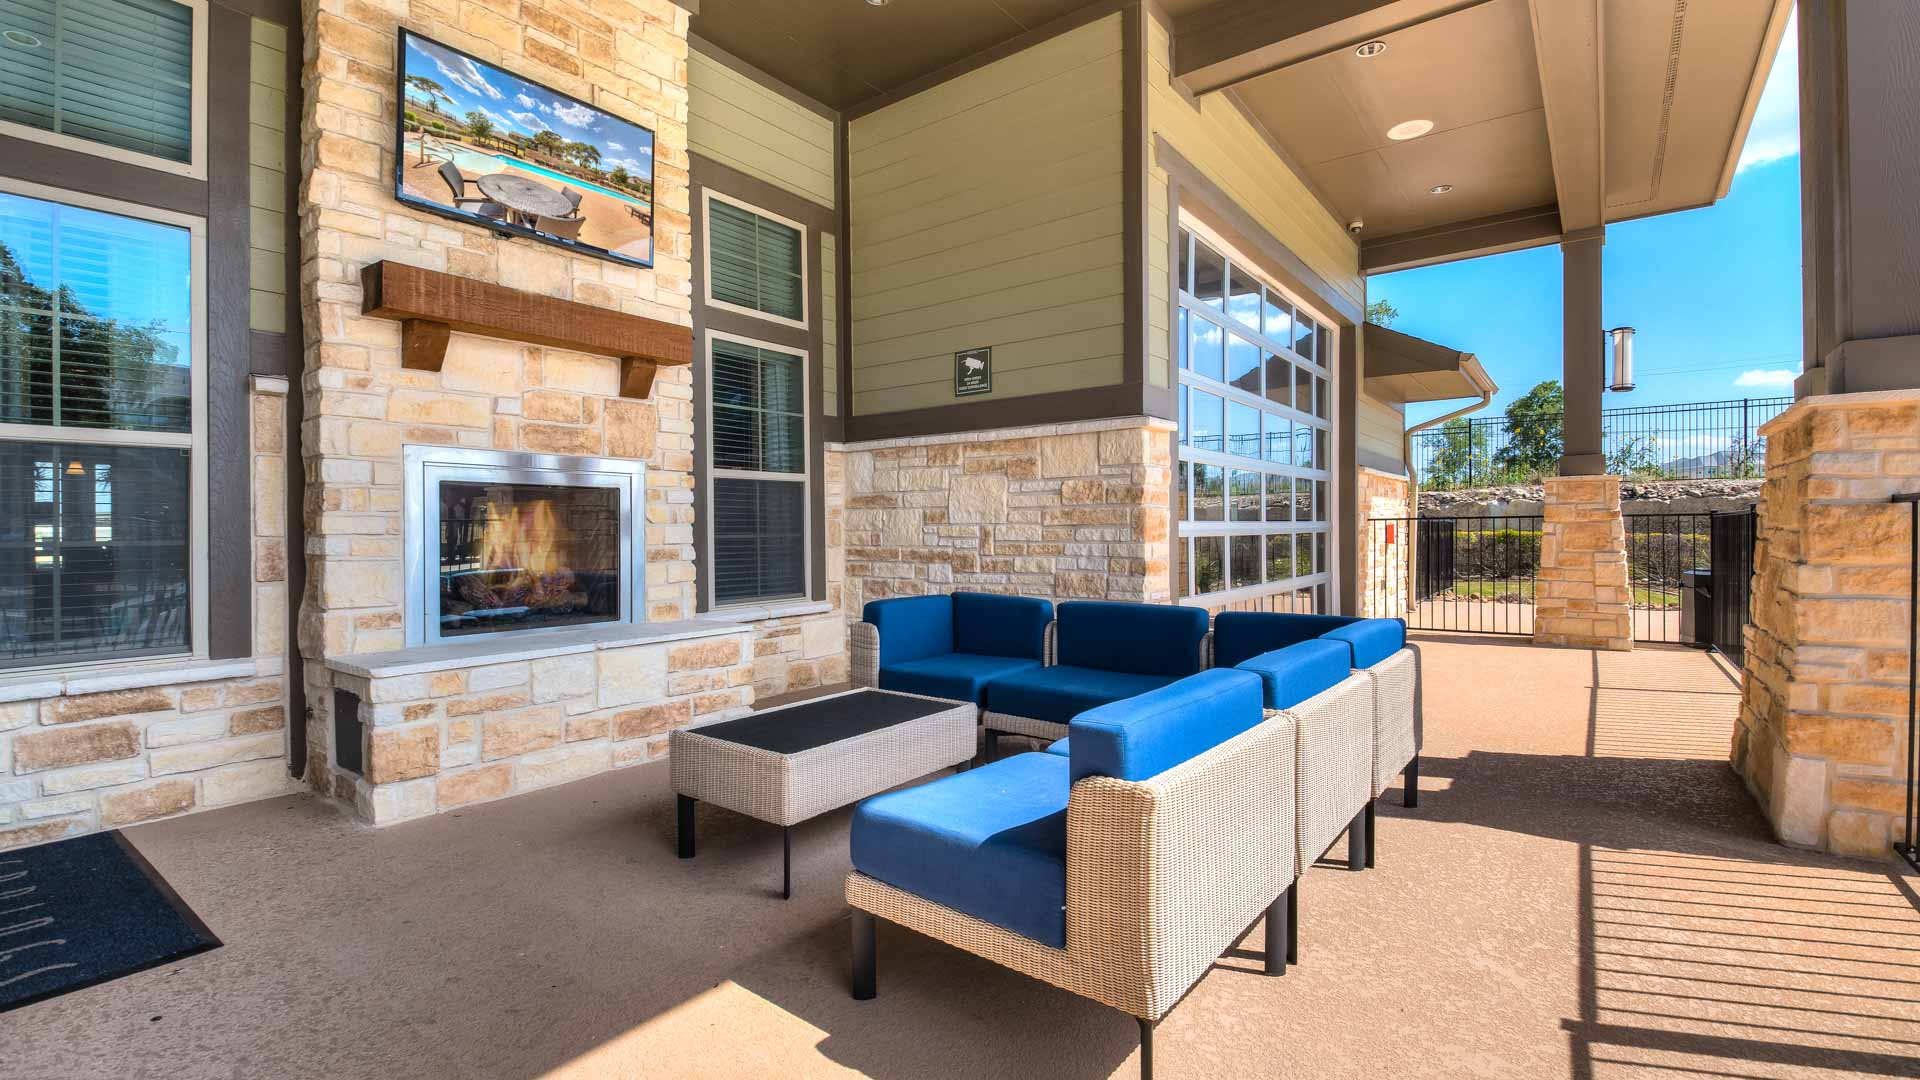 Fireplace and Outdoor Tv Lounge in San Antonio at Springs at Alamo Ranch